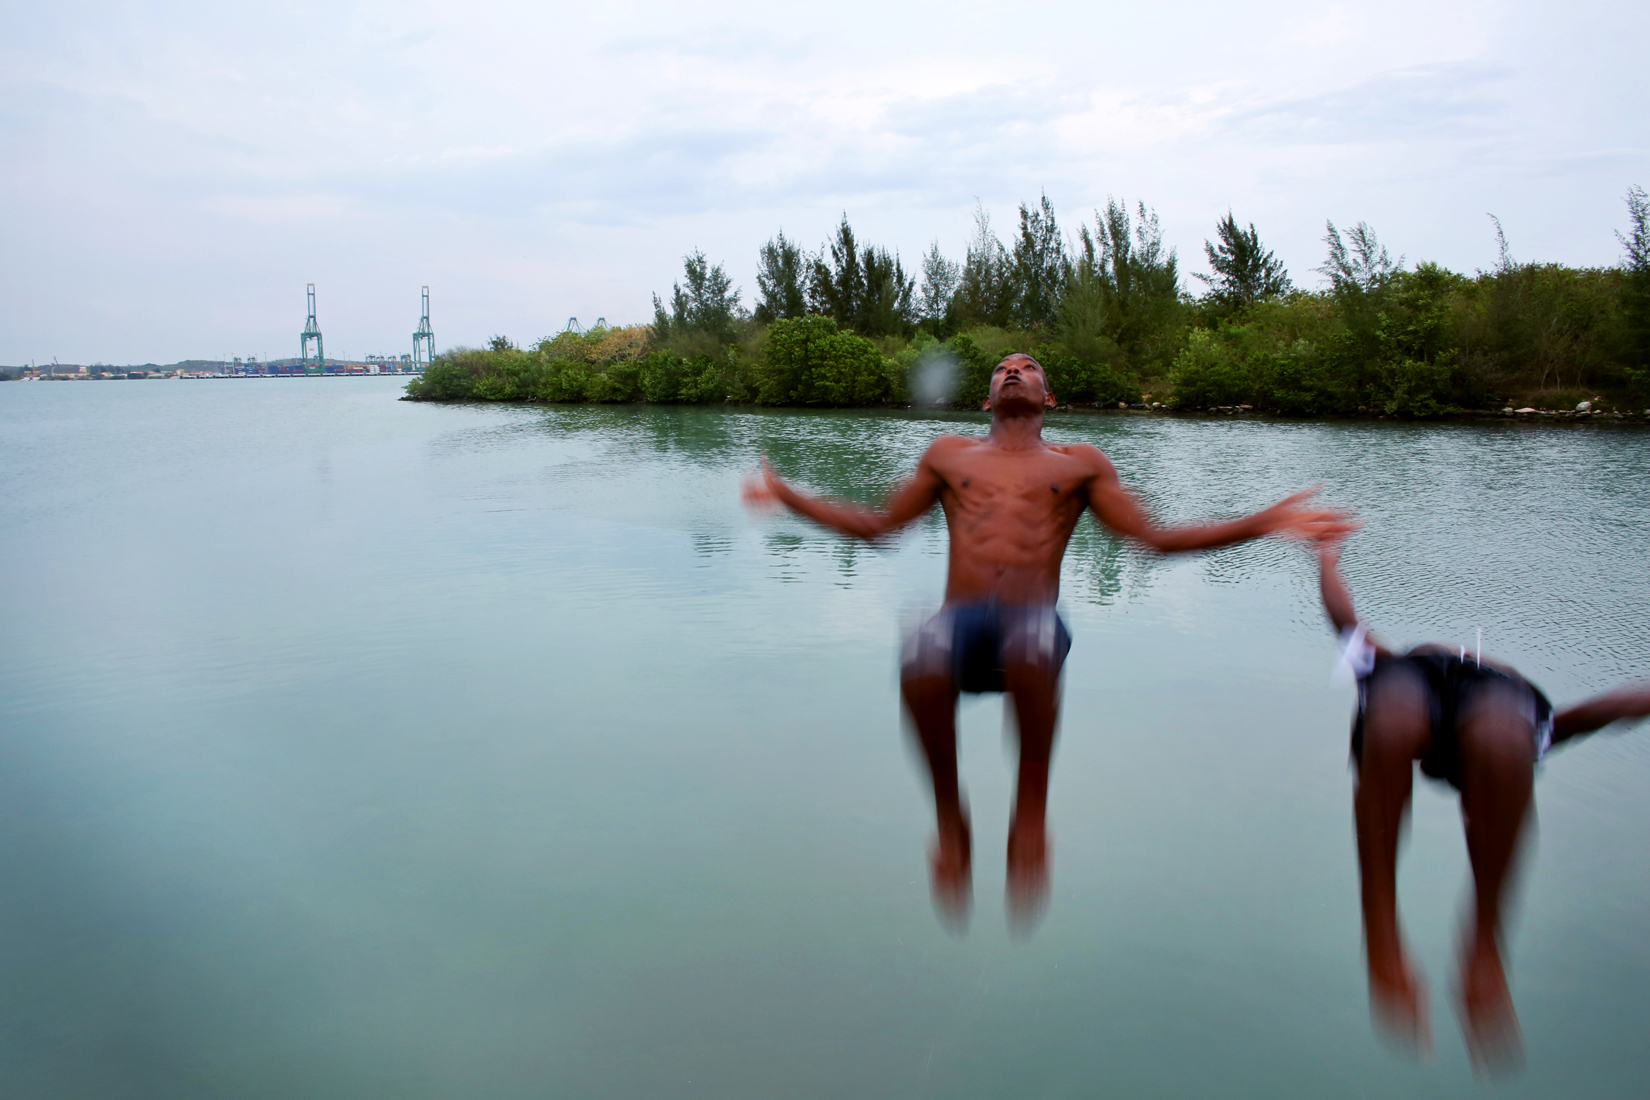 (L-R) Yandi Corrioso Samoraz, 22, and Raymel Medina, 16, go for an evening dip in the water, with construction of the new port visible in the background, in Mariel, Cuba. Raymel says he'd like to learn more about the world, but extremely limited internet access in his city, and in the country in general, makes this a challenge. (Internet access is either difficult to find, or prohibitively expensive.) Mariel's tranquil appearance belies its important place in both the history and future of Cuban-American interaction. It is where Russians unloaded nuclear warheads in the 1962 Cuban missile crisis, and the gateway through which 125,000 Miami-bound emigres fled during the Mariel Boatlift of 1980. The town is now the site of construction of a deepwater container port and a free-trade zone, a critical ingredient for which will be the future of the U.S. embargo against Cuba, in place for more than 50 years but now under speculation of being lifted. Cuba, a place of much recent conversation, is a country whose politics and way of life parallel much of my childhood in Bulgaria. This is 2015's continuation to my project on democracy + communism, started last year on the 25th anniversary of the fall of the Berlin Wall - the event that gave opportunity to Eastern Europeans like me to immigrate to the Western world. These are the ways in which Cuba has transported me to pre- and post-1989 Bulgaria.